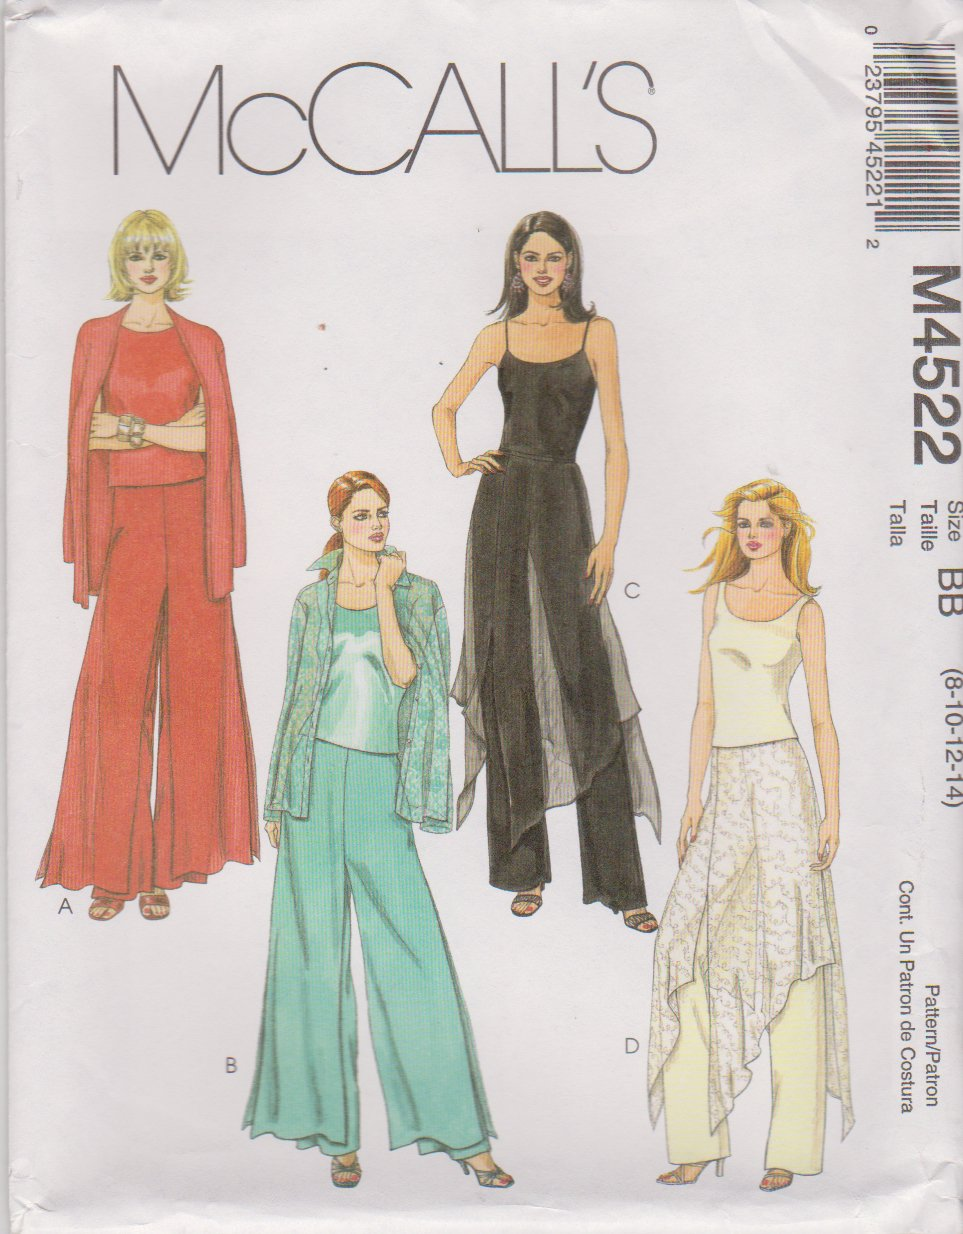 McCall's Sewing Pattern 4522 Misses Size 8-14 Fitted Long Pants With Overskirt Variations